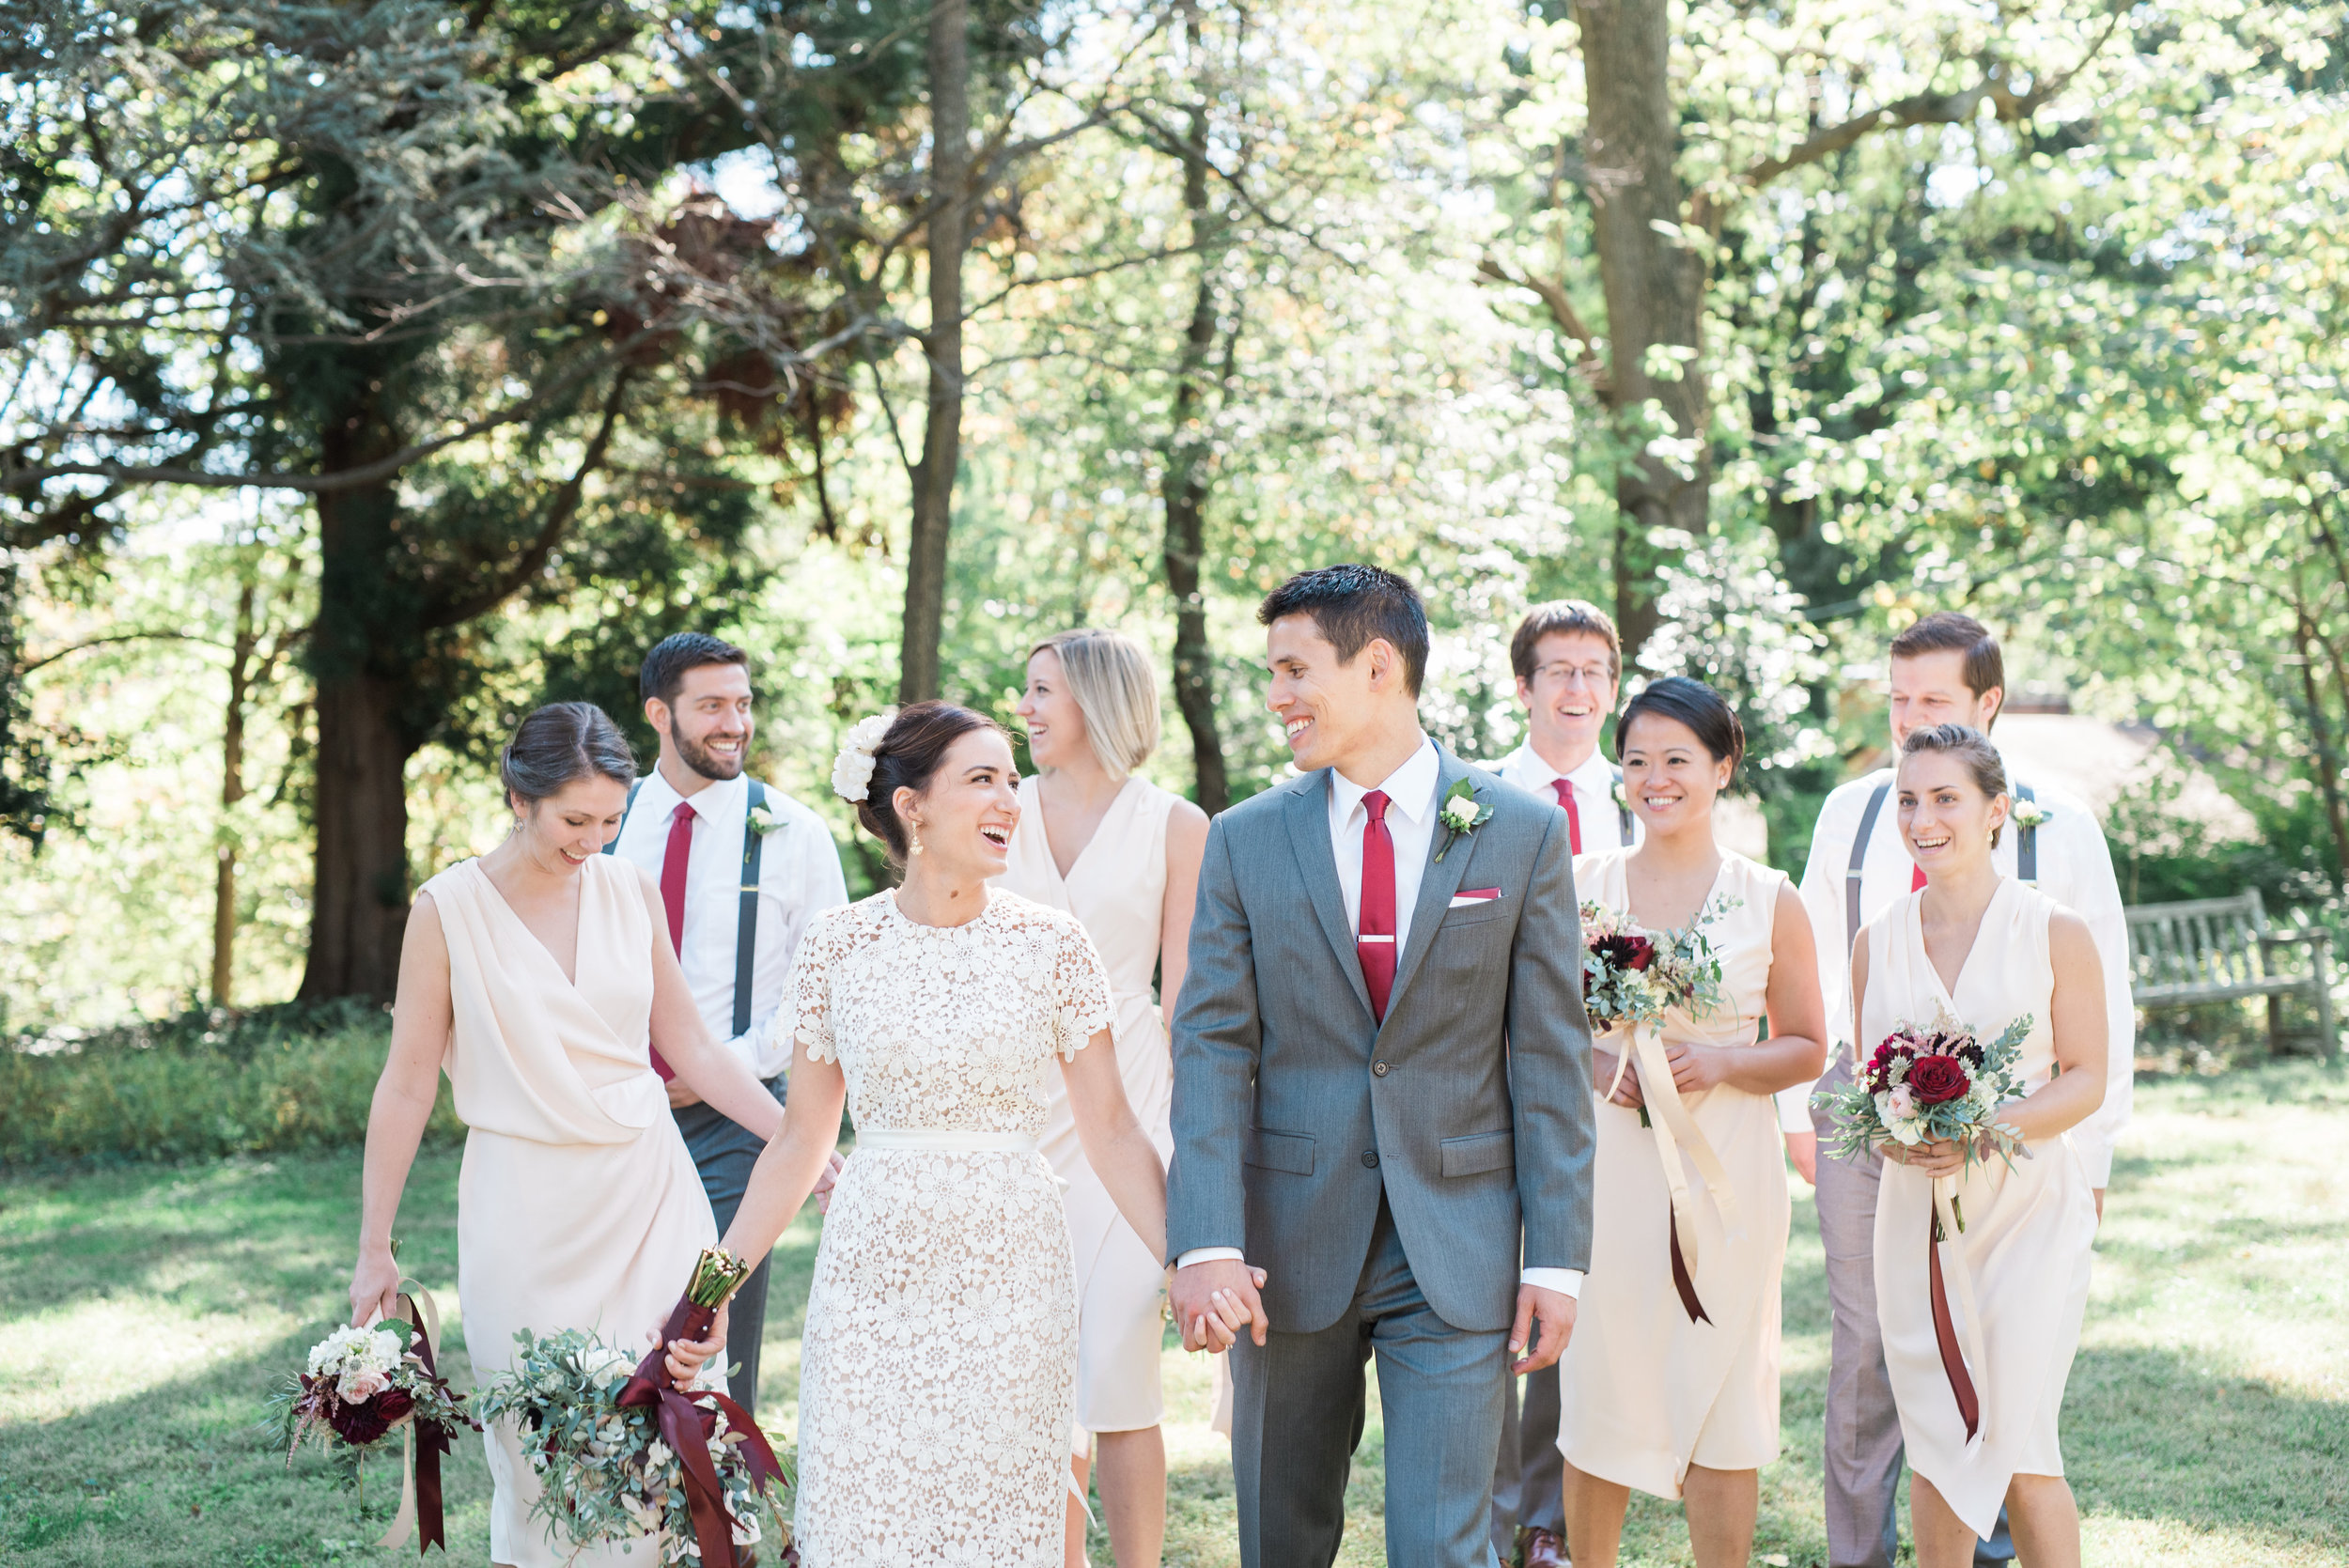 Rustic Outdoor Fall Arlington Virginia Hendry House Wedding with East Made Event Company Baltimore Maryland Washington DC Wedding Planner and ksant photography Richmond Virginia Wedding Photographer 13.jpg